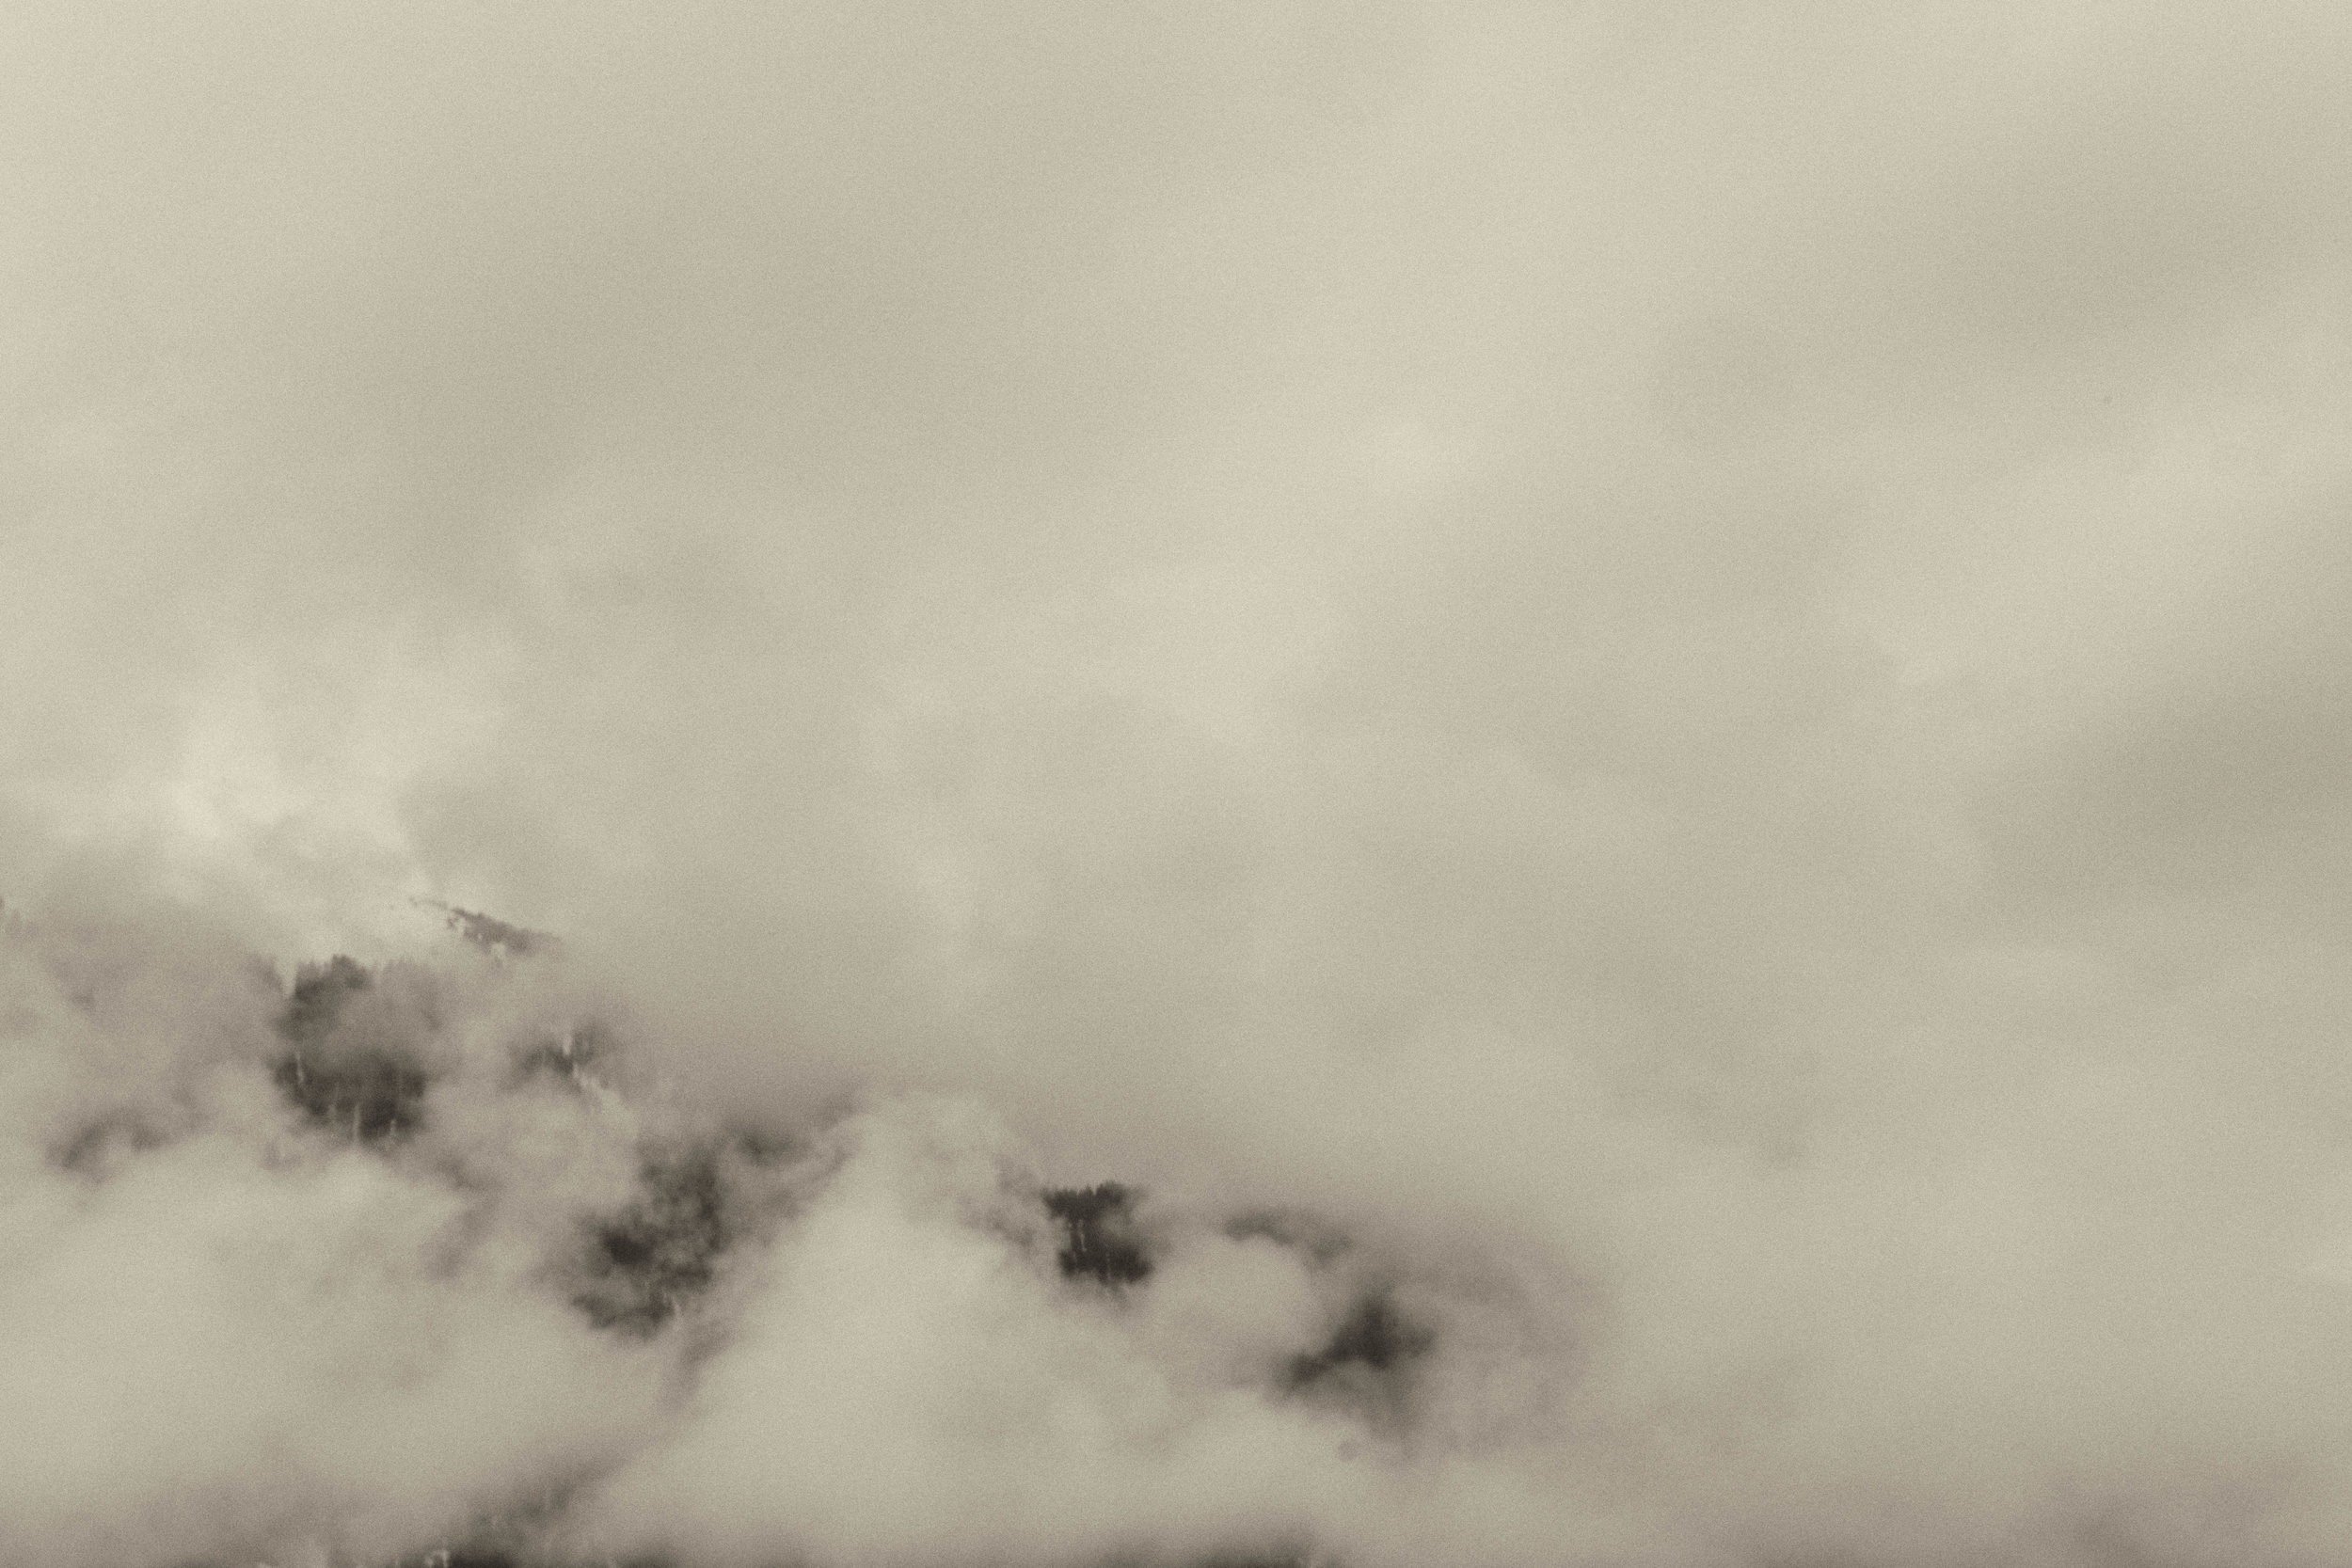 20180210-DSCF0561_cloudsverbier-Edit.jpg